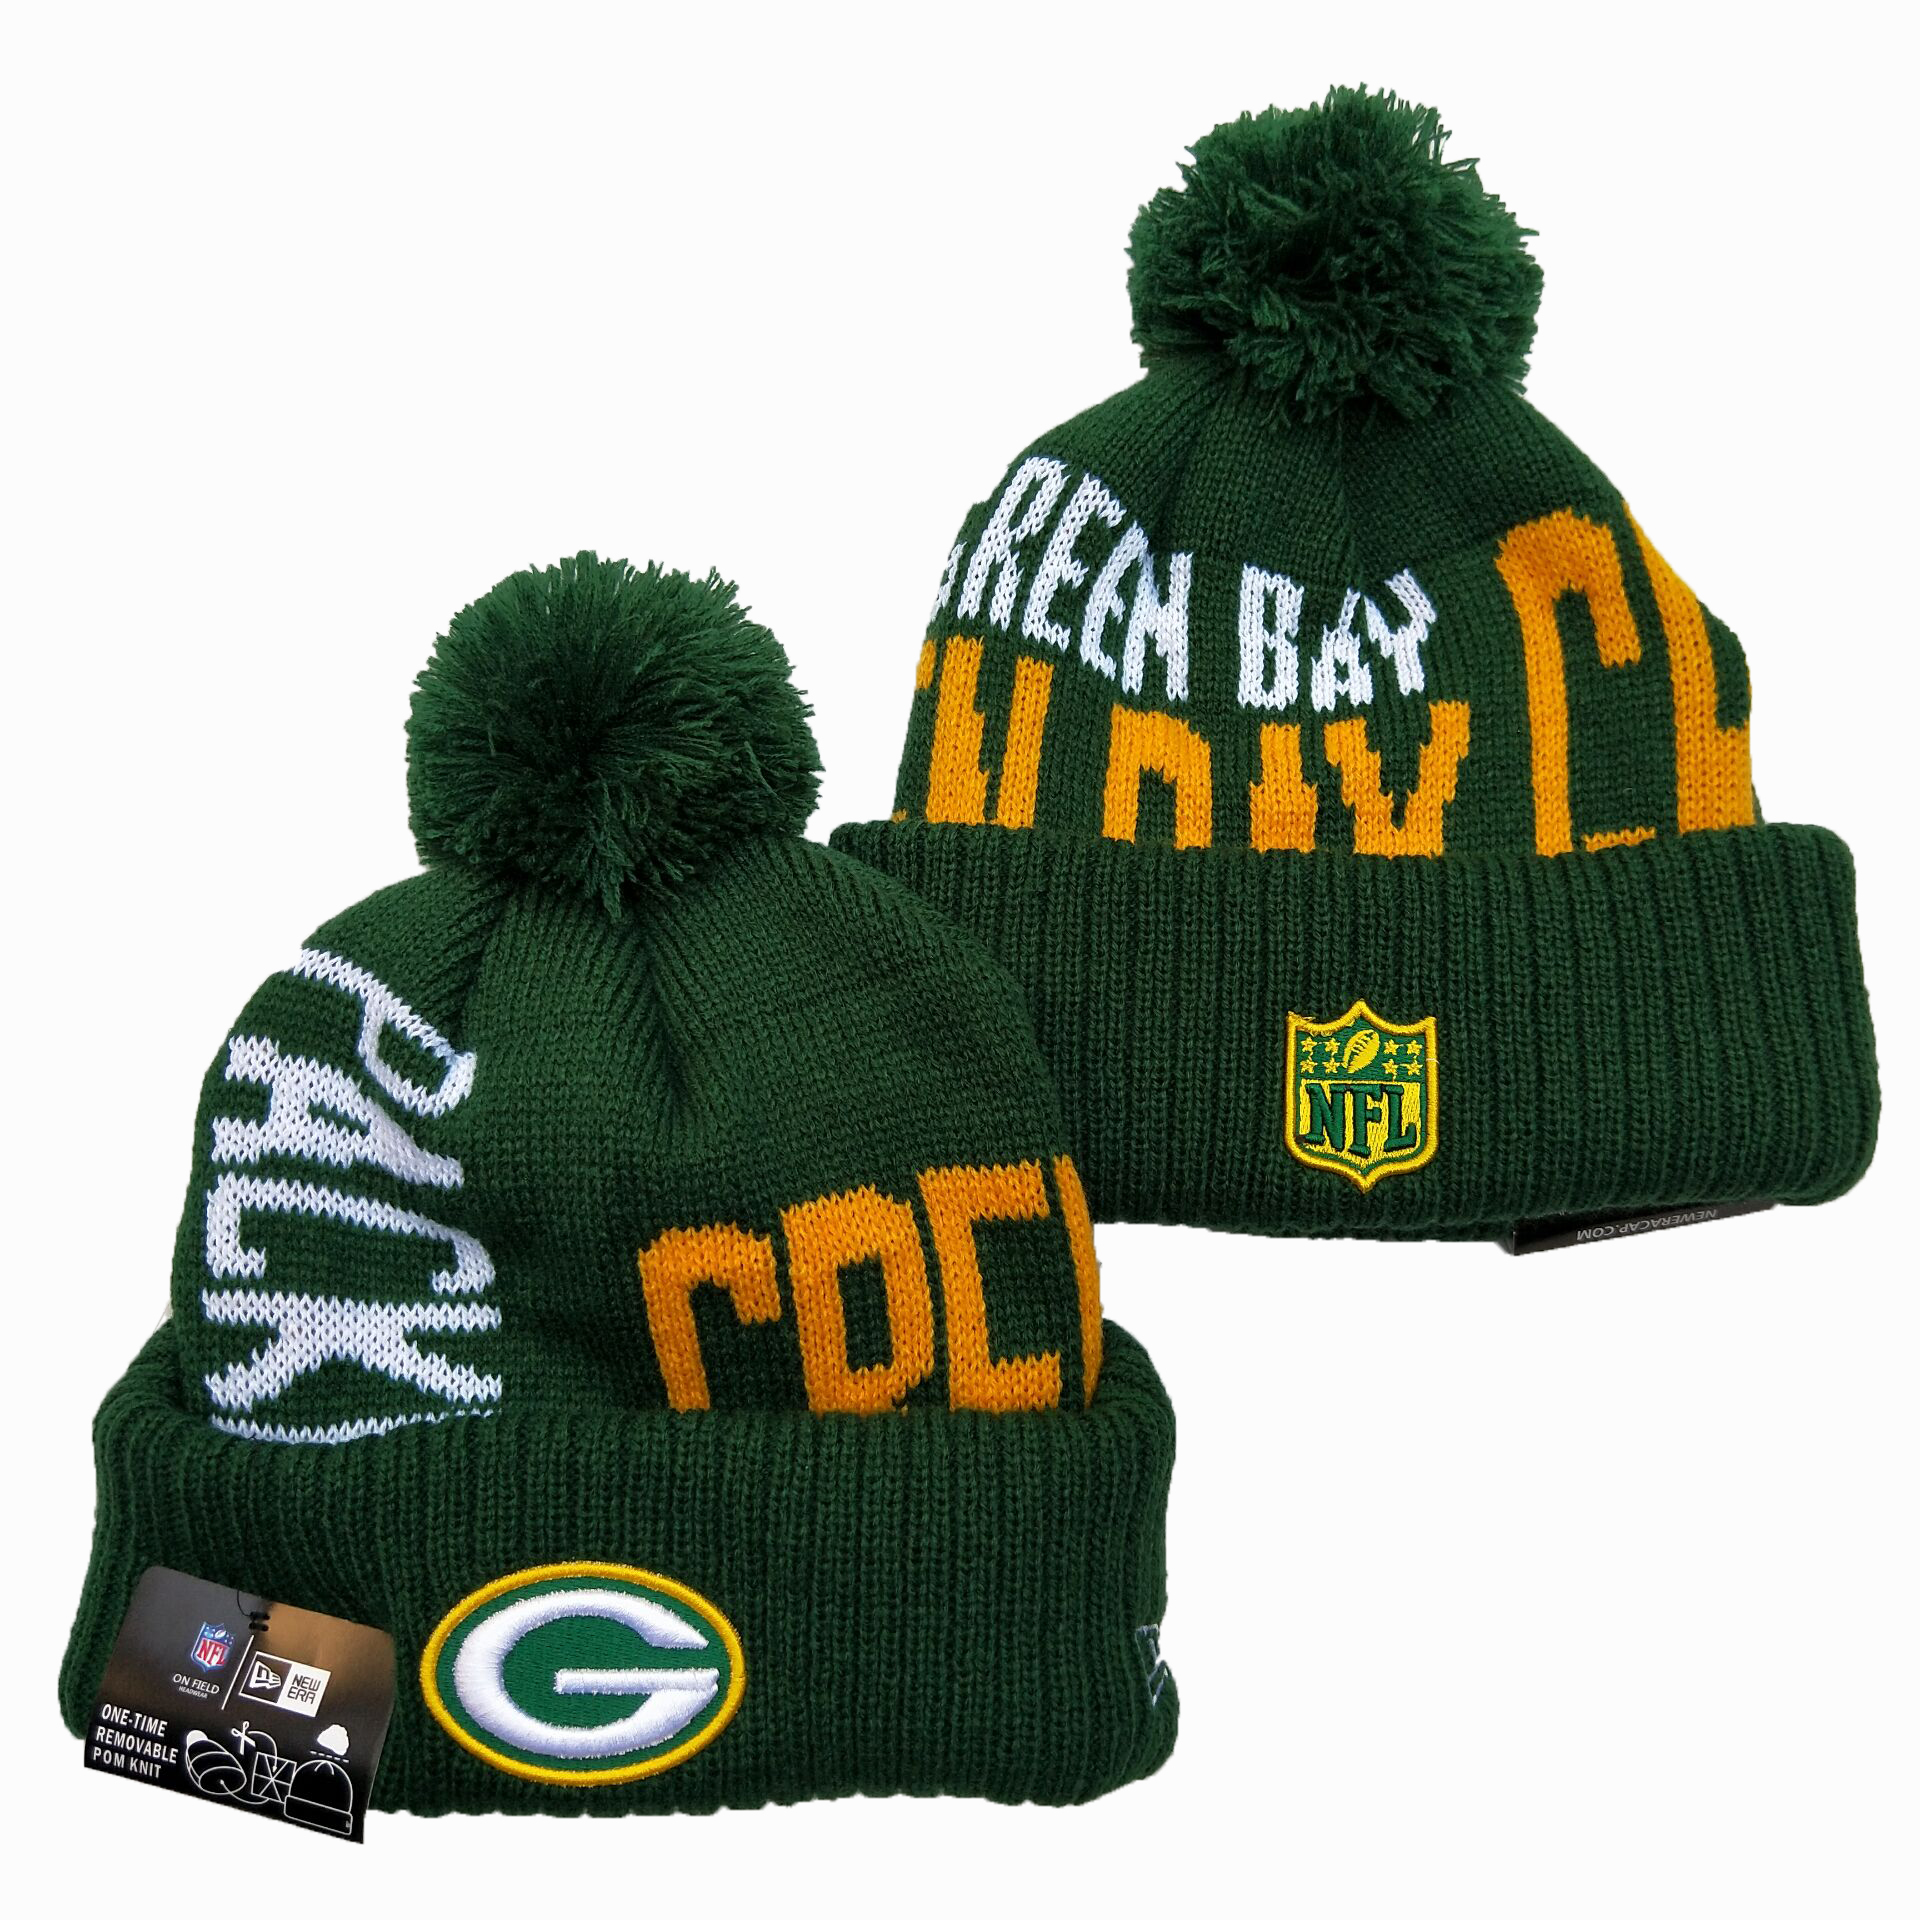 NFL Green Bay Packers Knit Hats 090